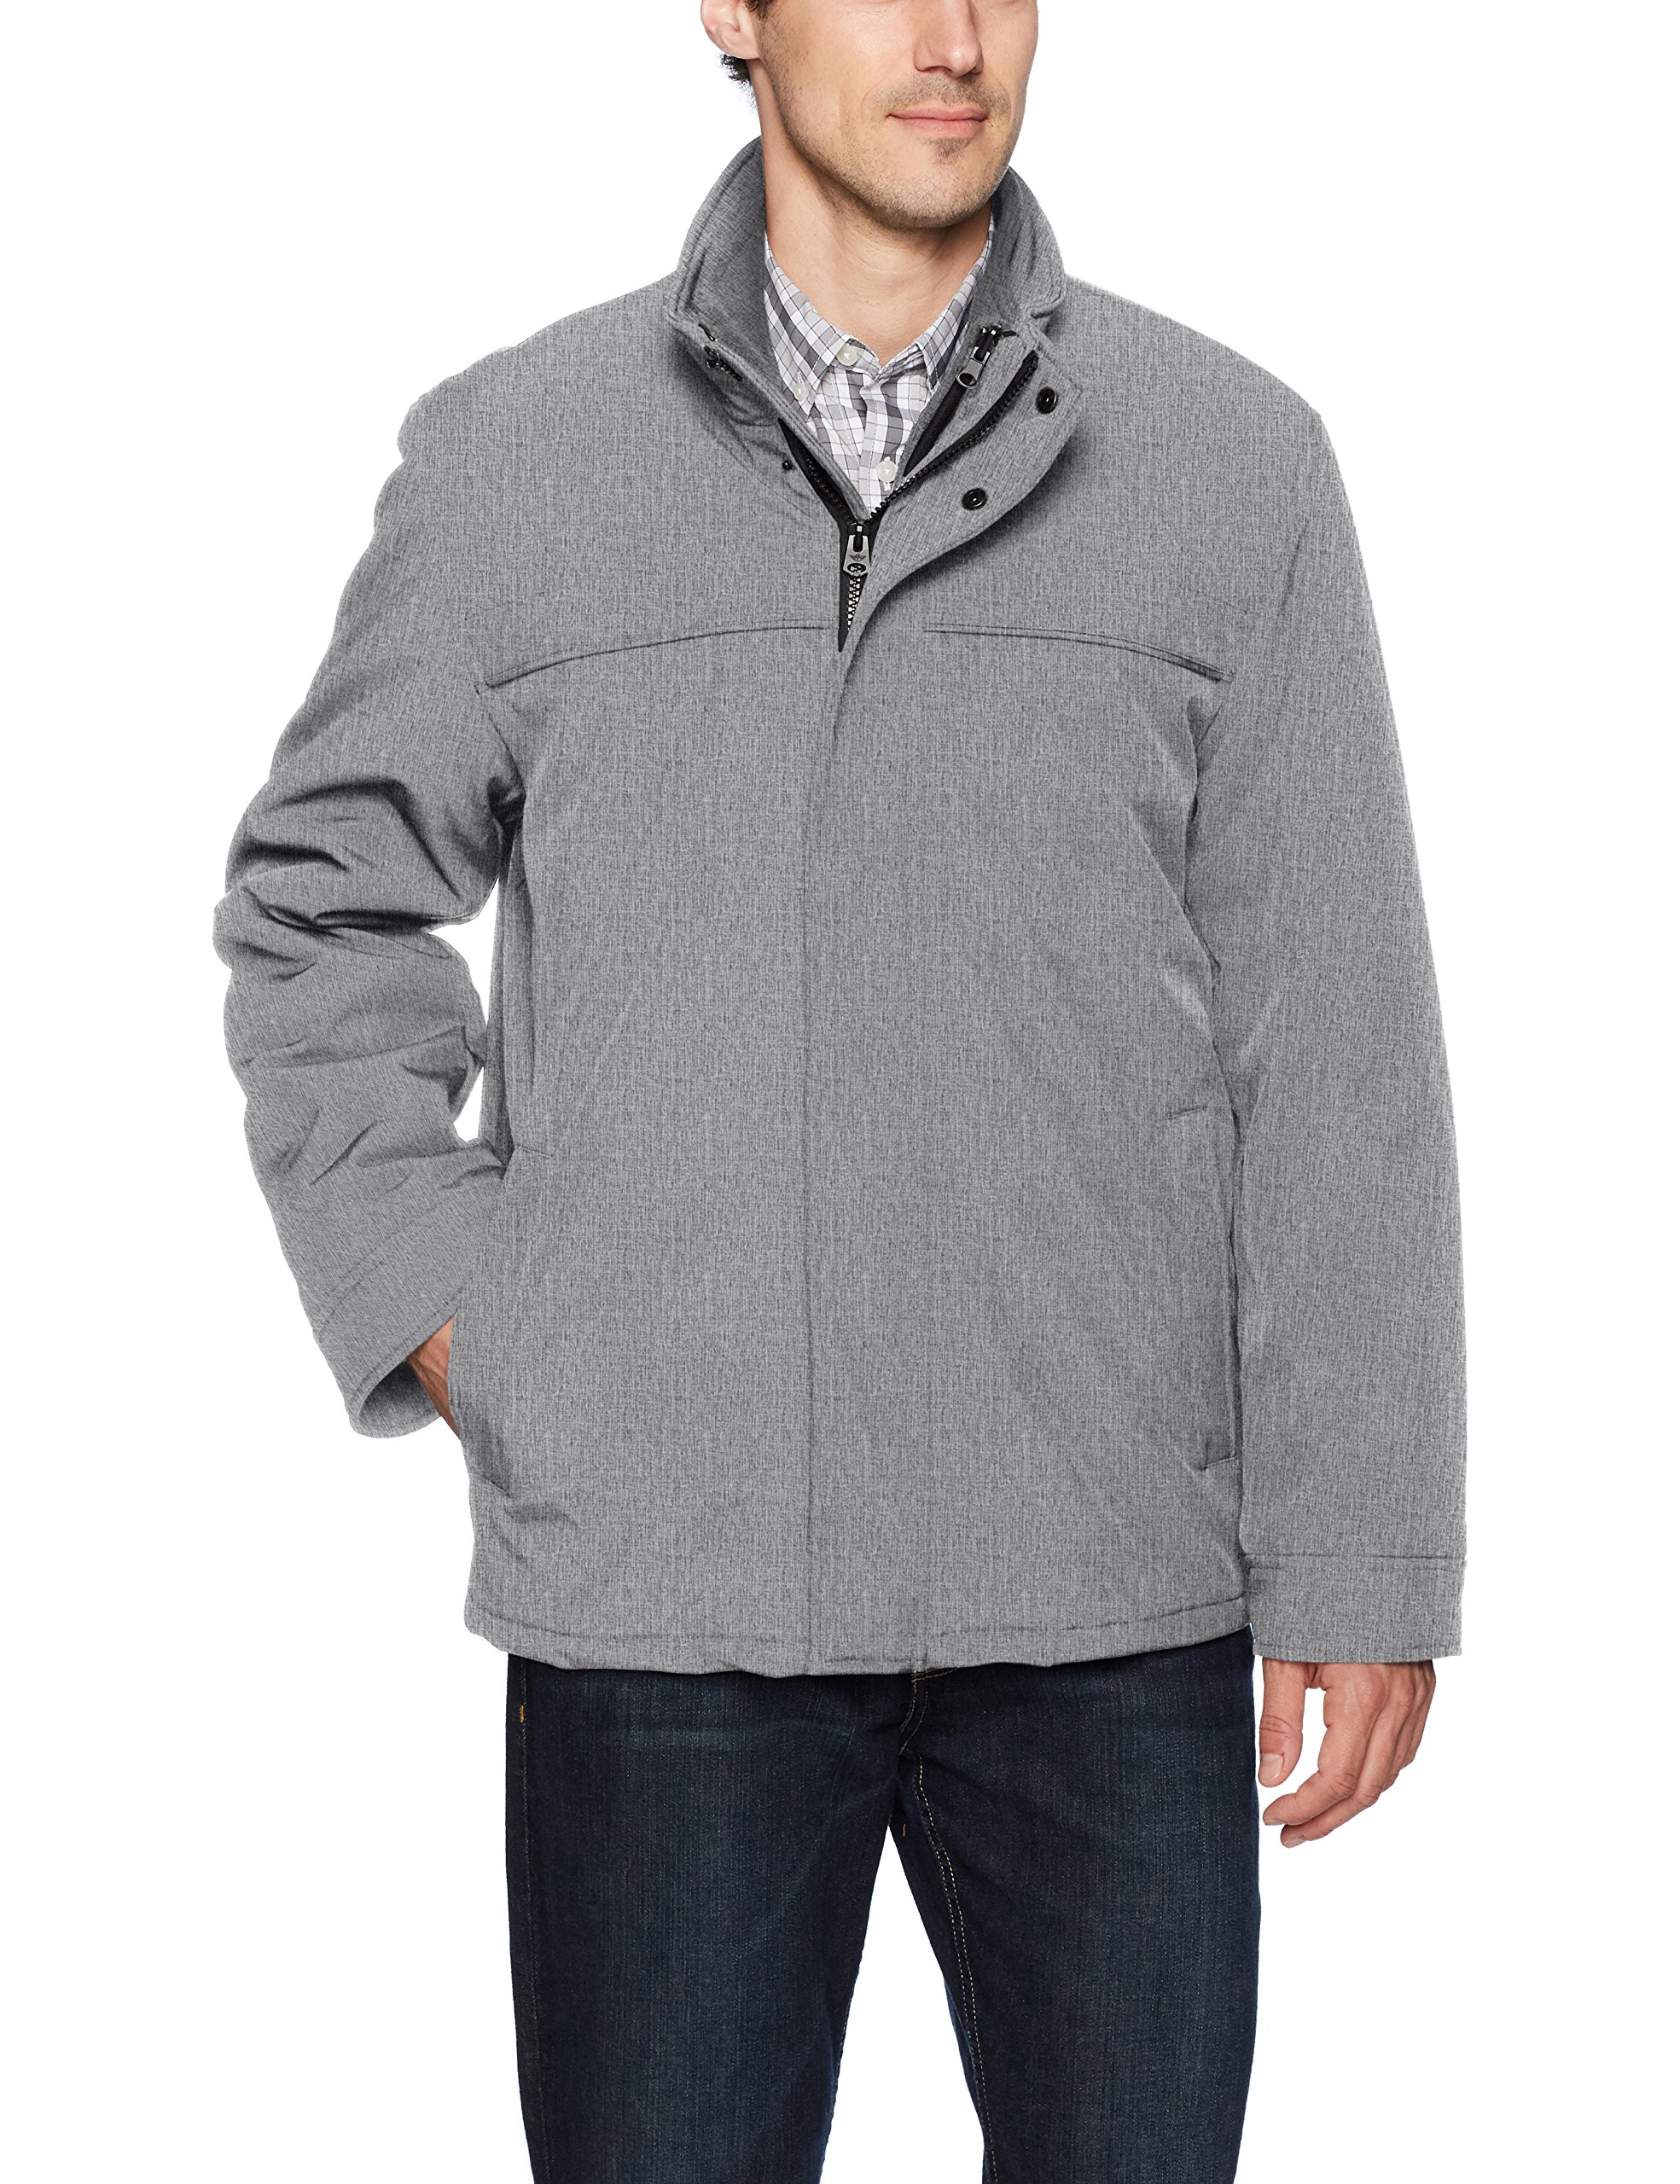 Dockers Men's 3-in-1 Soft Shell Systems Jacket with Fleece Liner, Heather Grey, XX-Large by Dockers